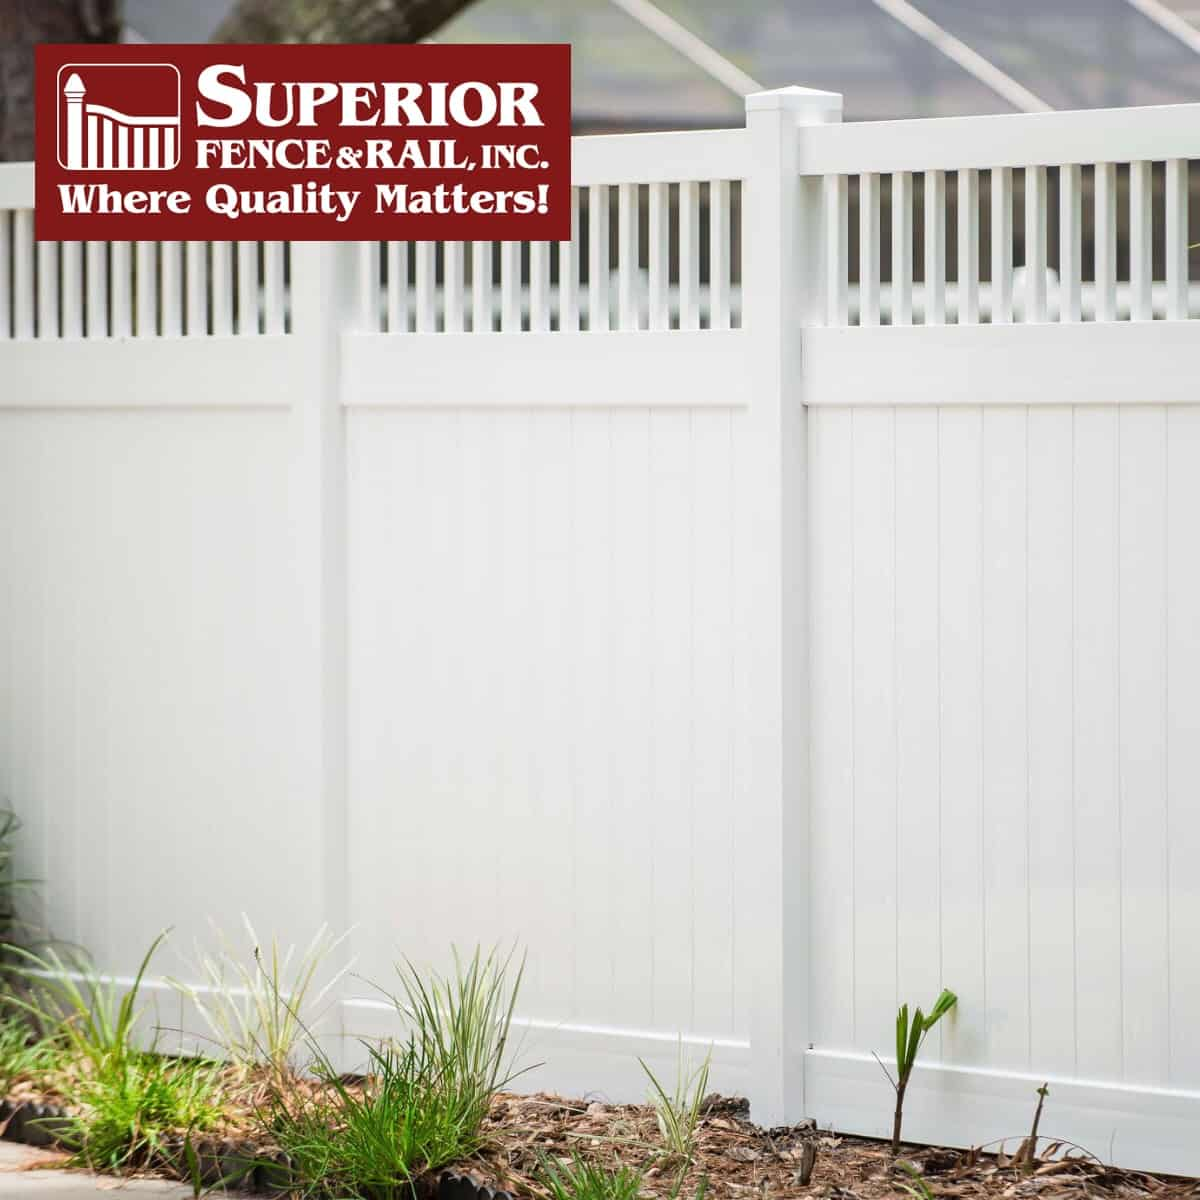 https://www.superiorfenceandrail.com/wp-content/uploads/2020/06/Foley-Fence-Company-Contractor.jpg